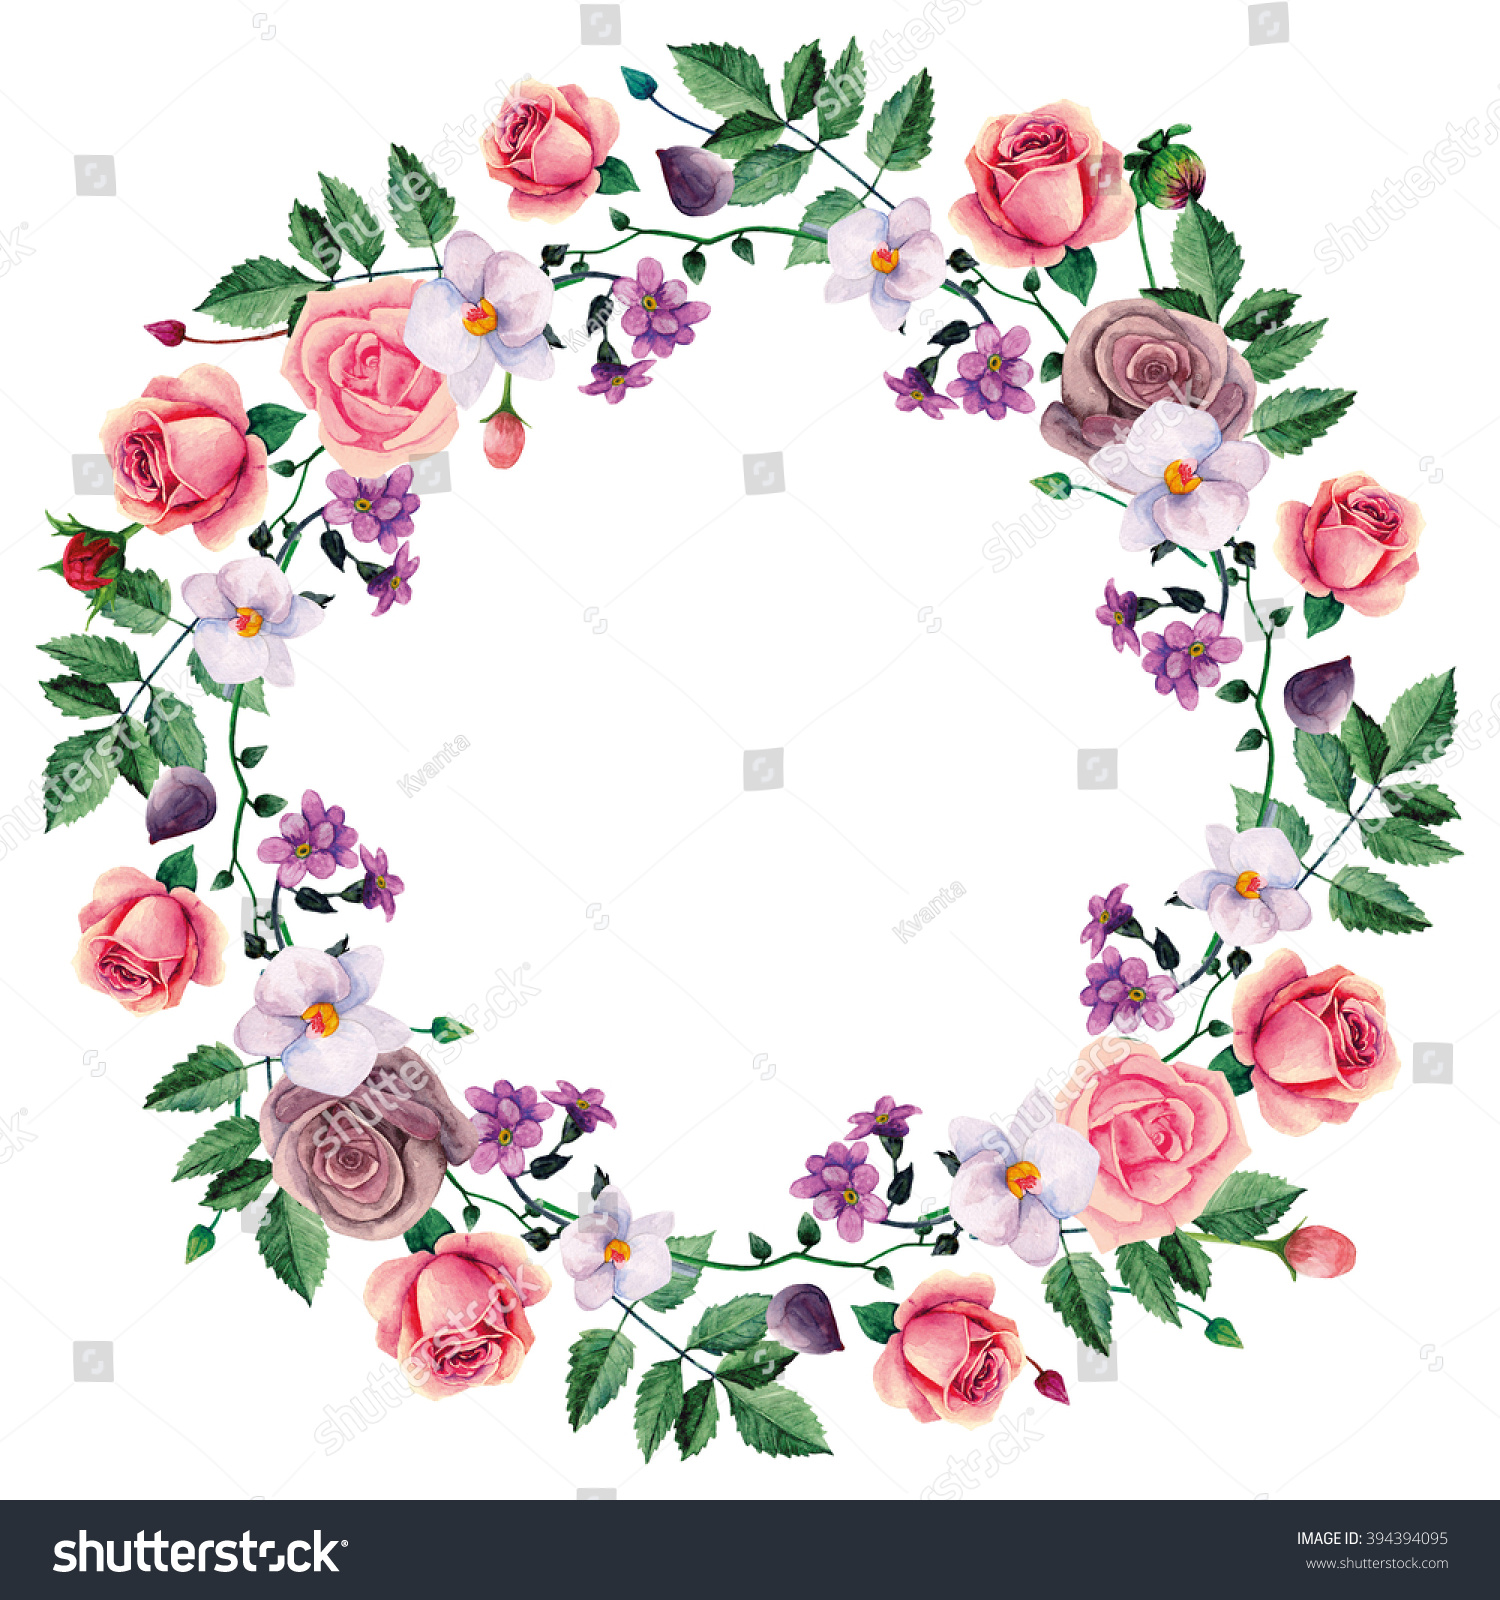 Watercolor Wreath Of Roses  Hand Drawn Flowers Stock